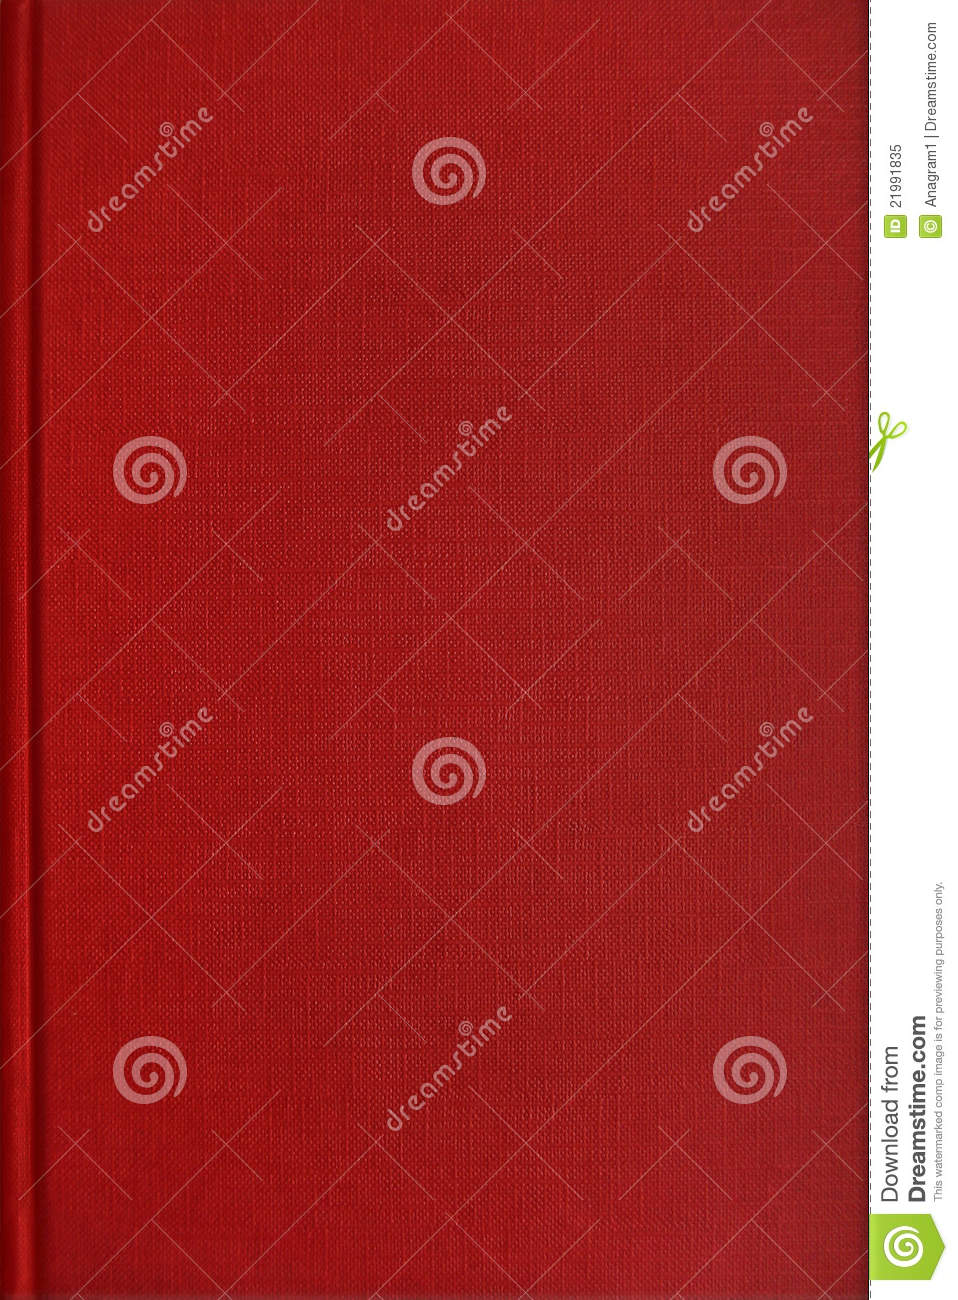 Cookbook Red Checkered Cover ~ Red book cover royalty free stock photo image